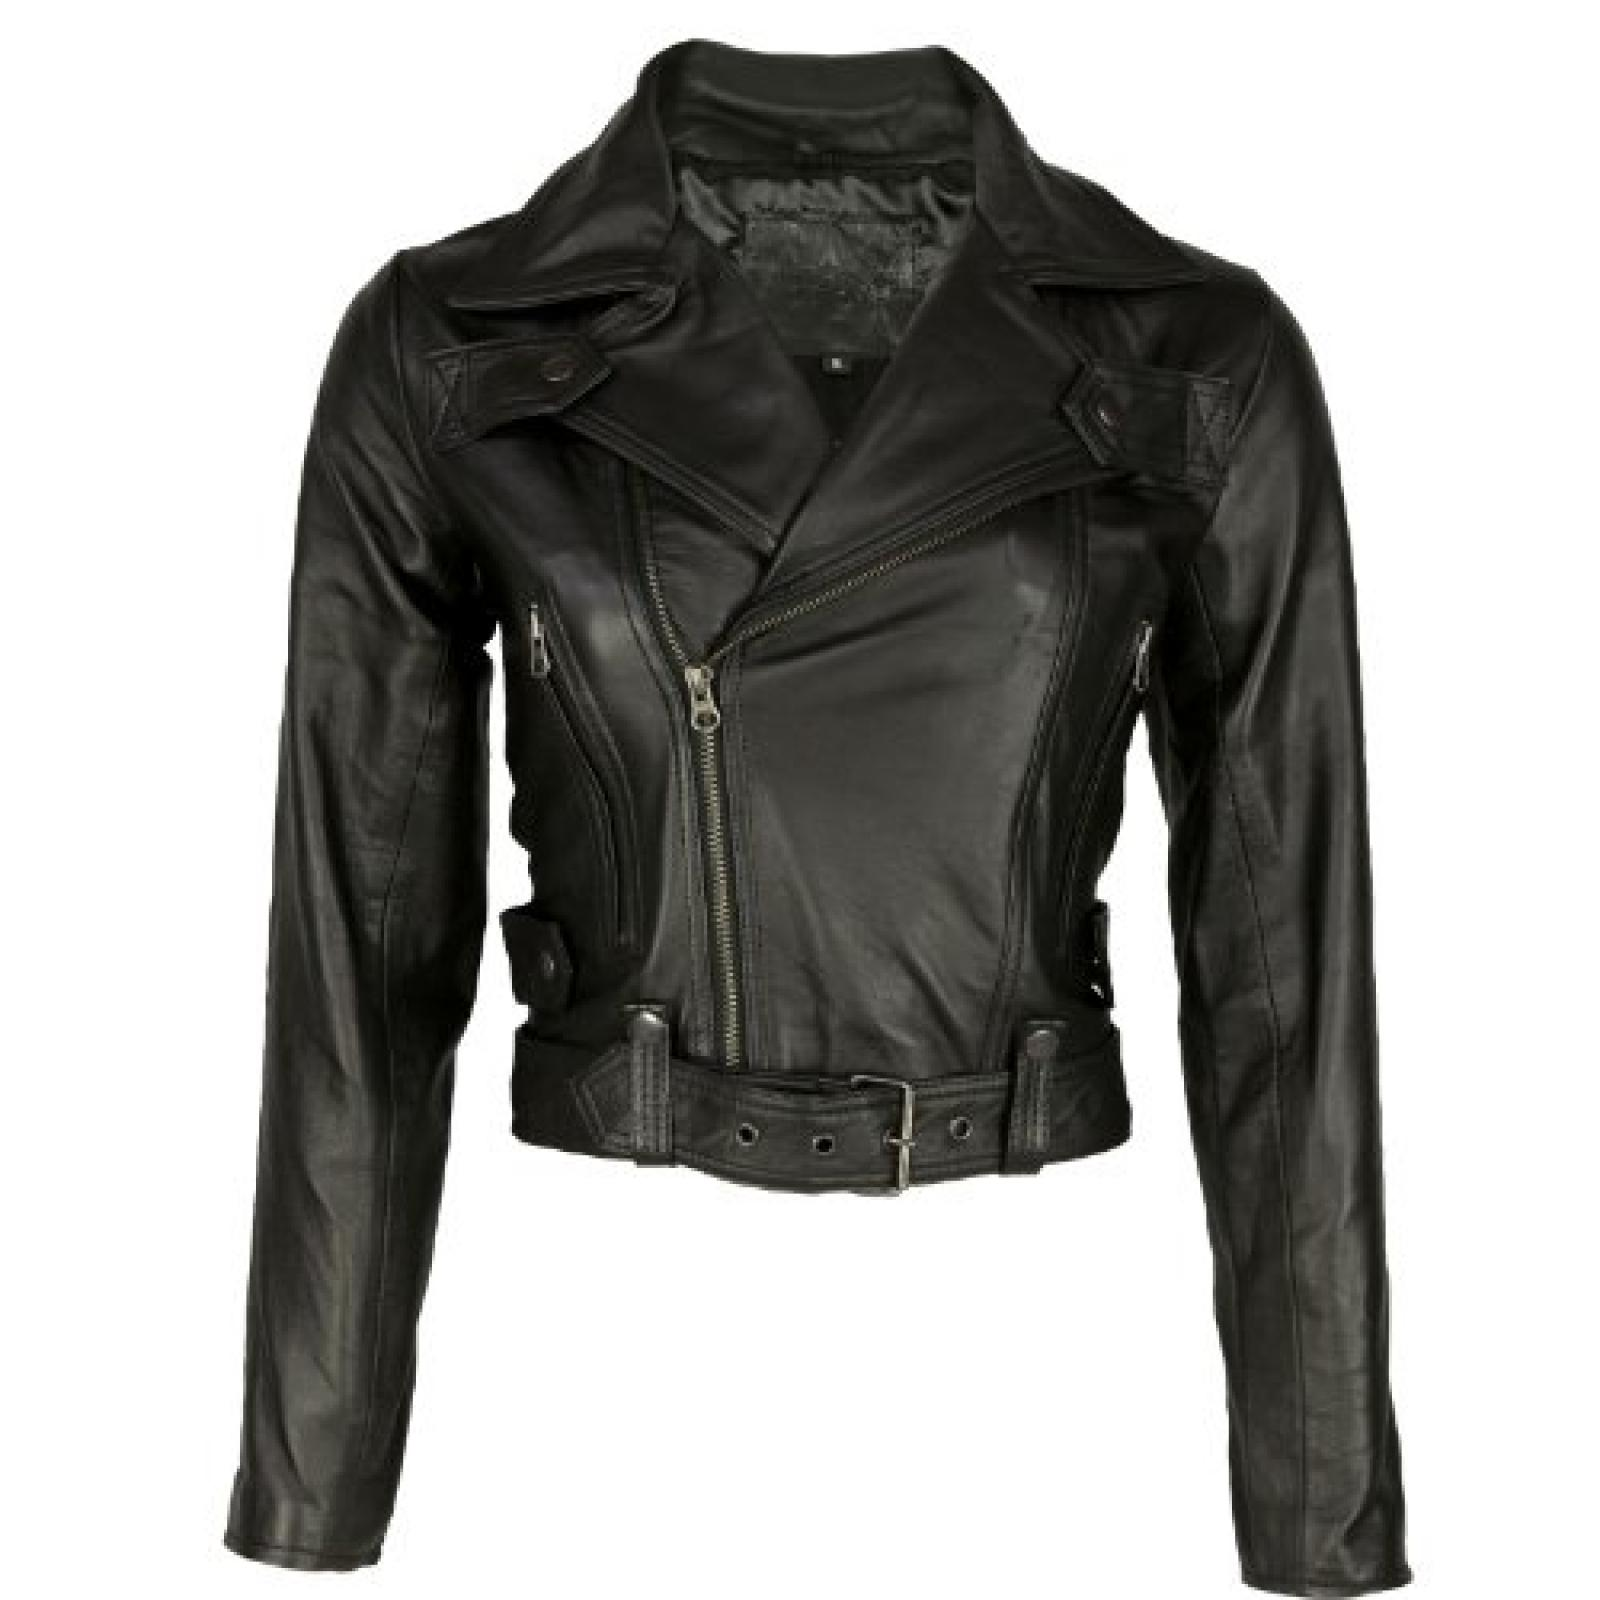 VIPARO Womens Black Lambskin Quilted Biker Leather Jacket - Kendra